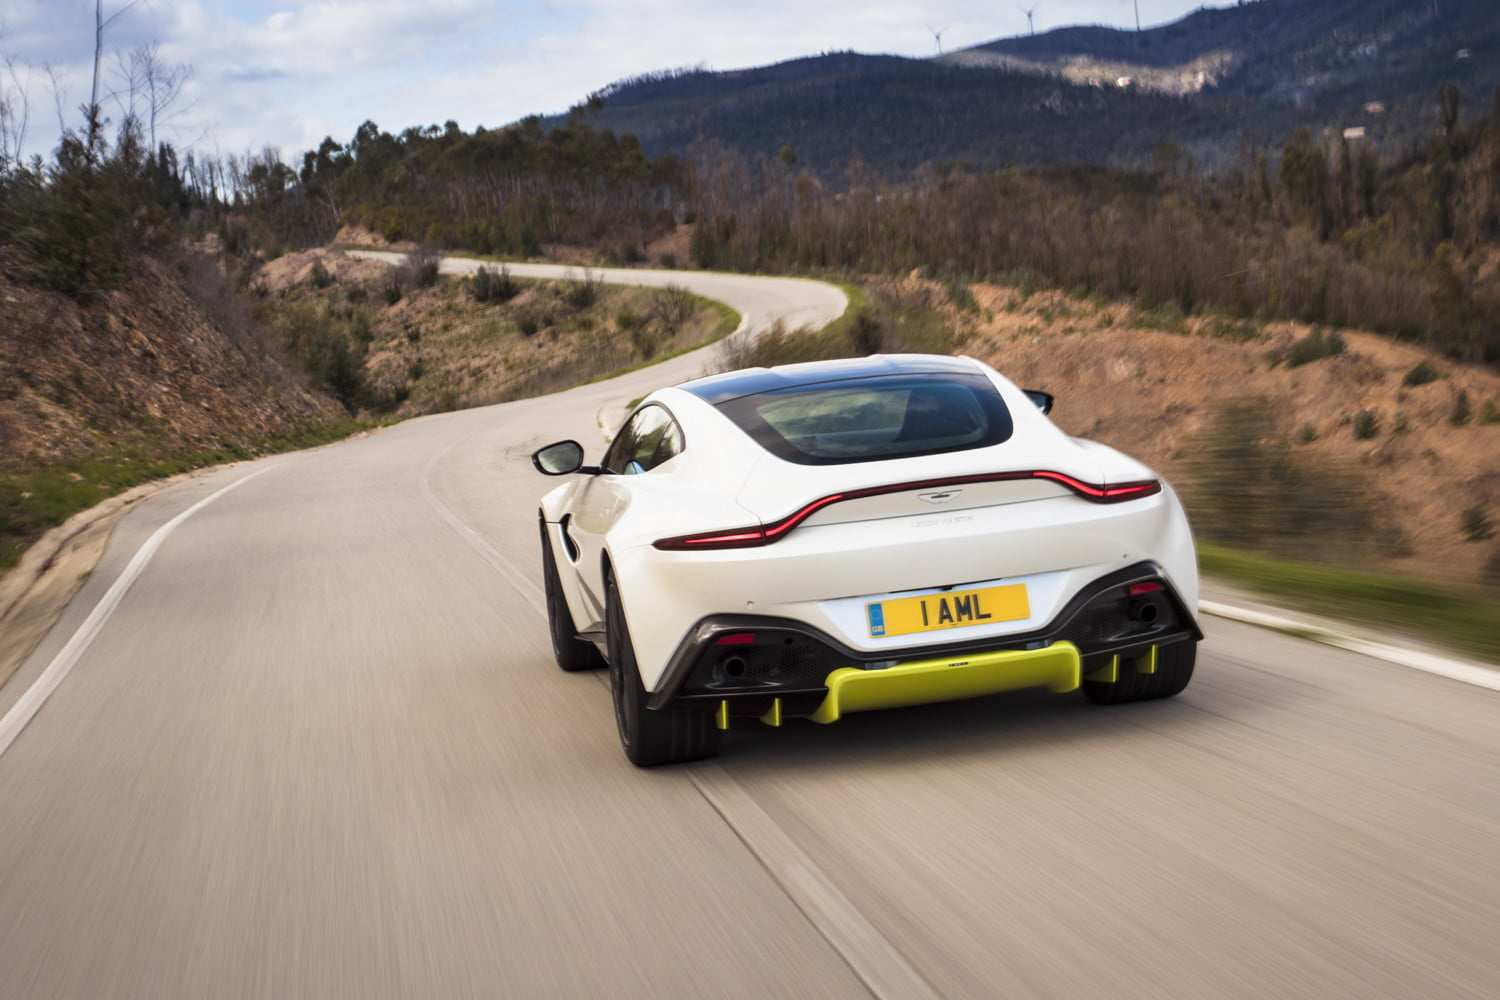 65 Great 2019 Aston Martin Vantage Speed Test by 2019 Aston Martin Vantage